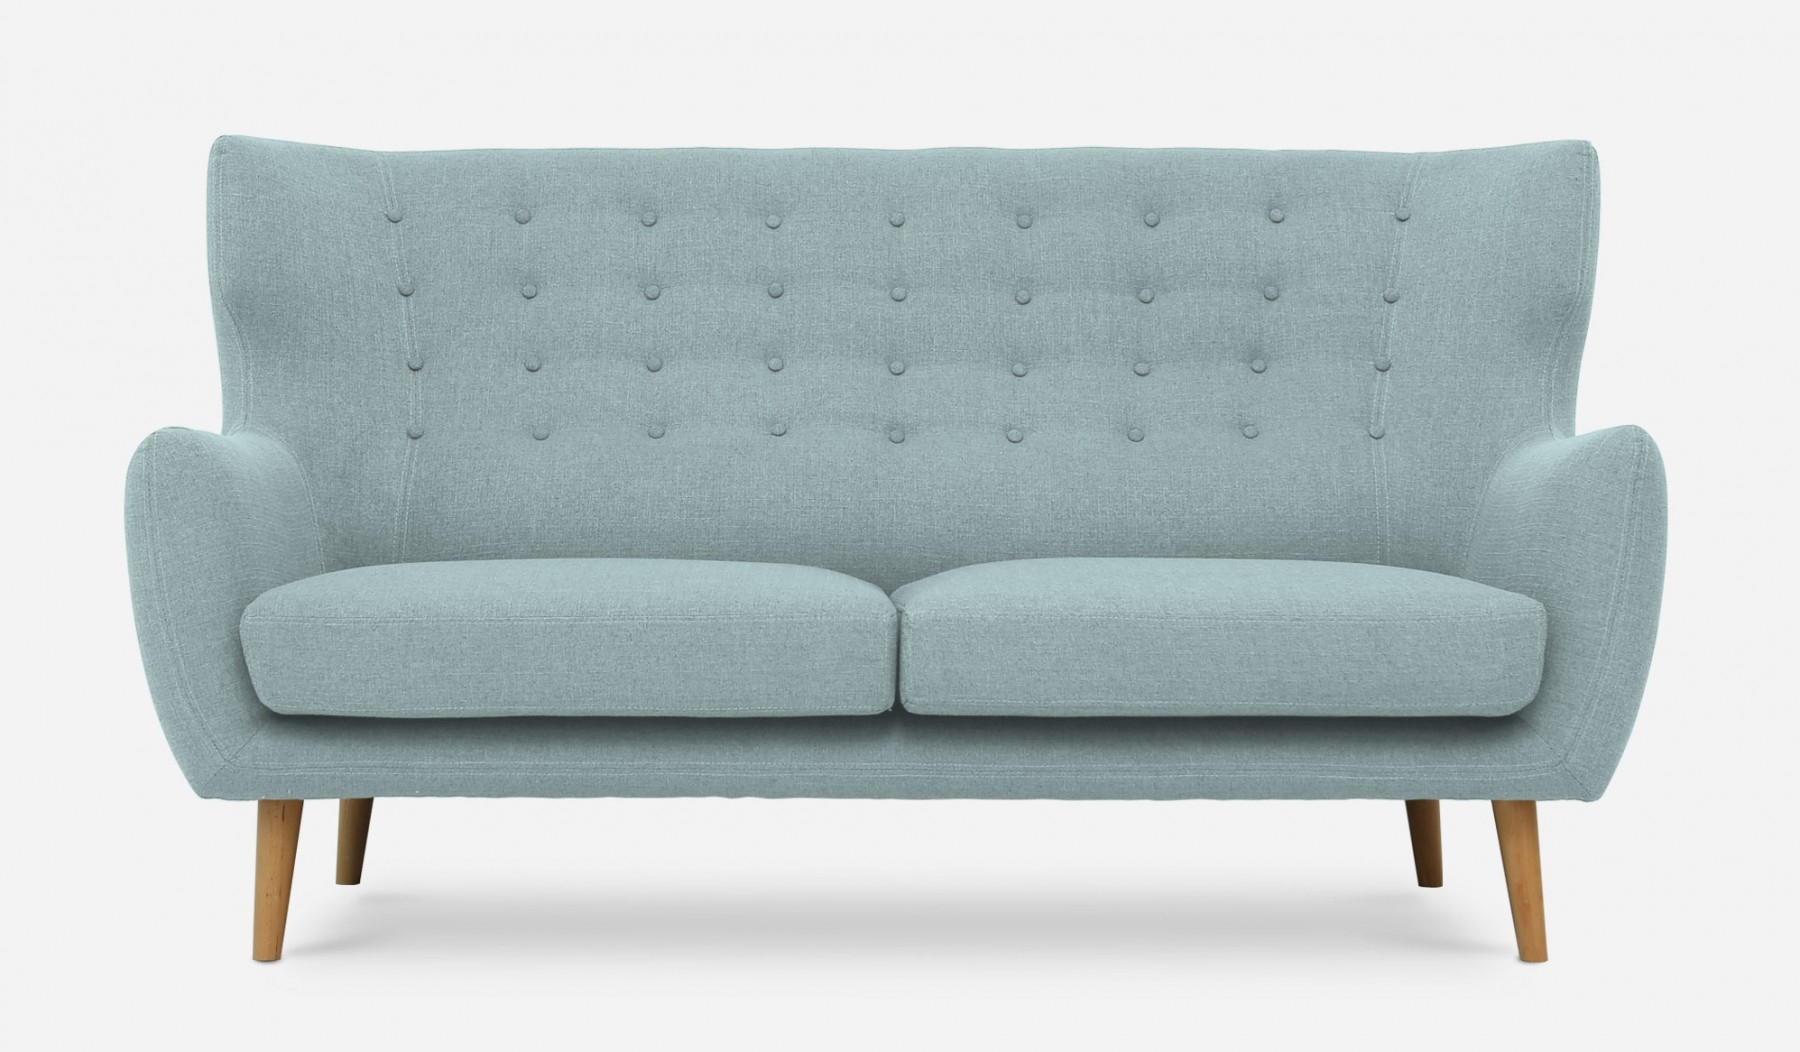 Beck Sofa Customized Inside Customized Sofas (Image 1 of 15)